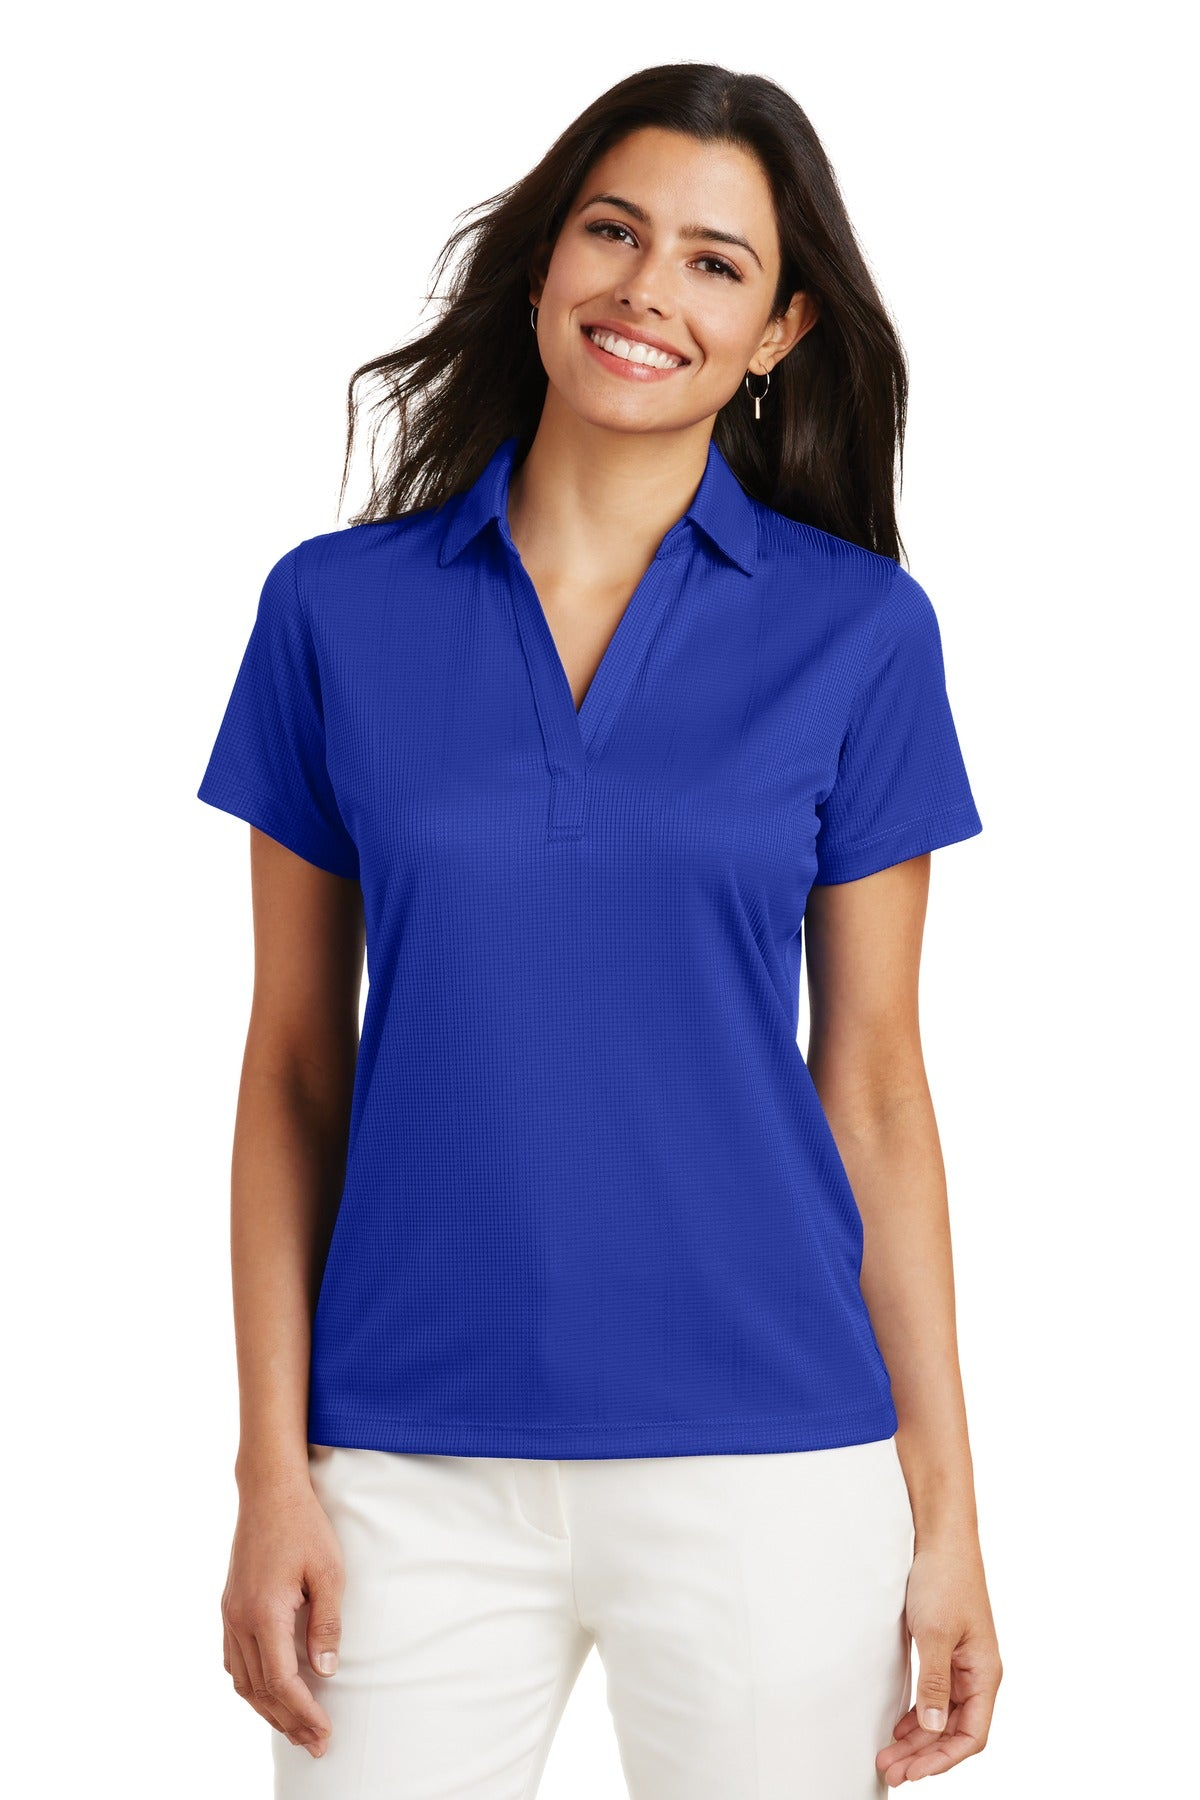 Carolina Blue Port Authority Ladies Silk Touch Performance Polo.